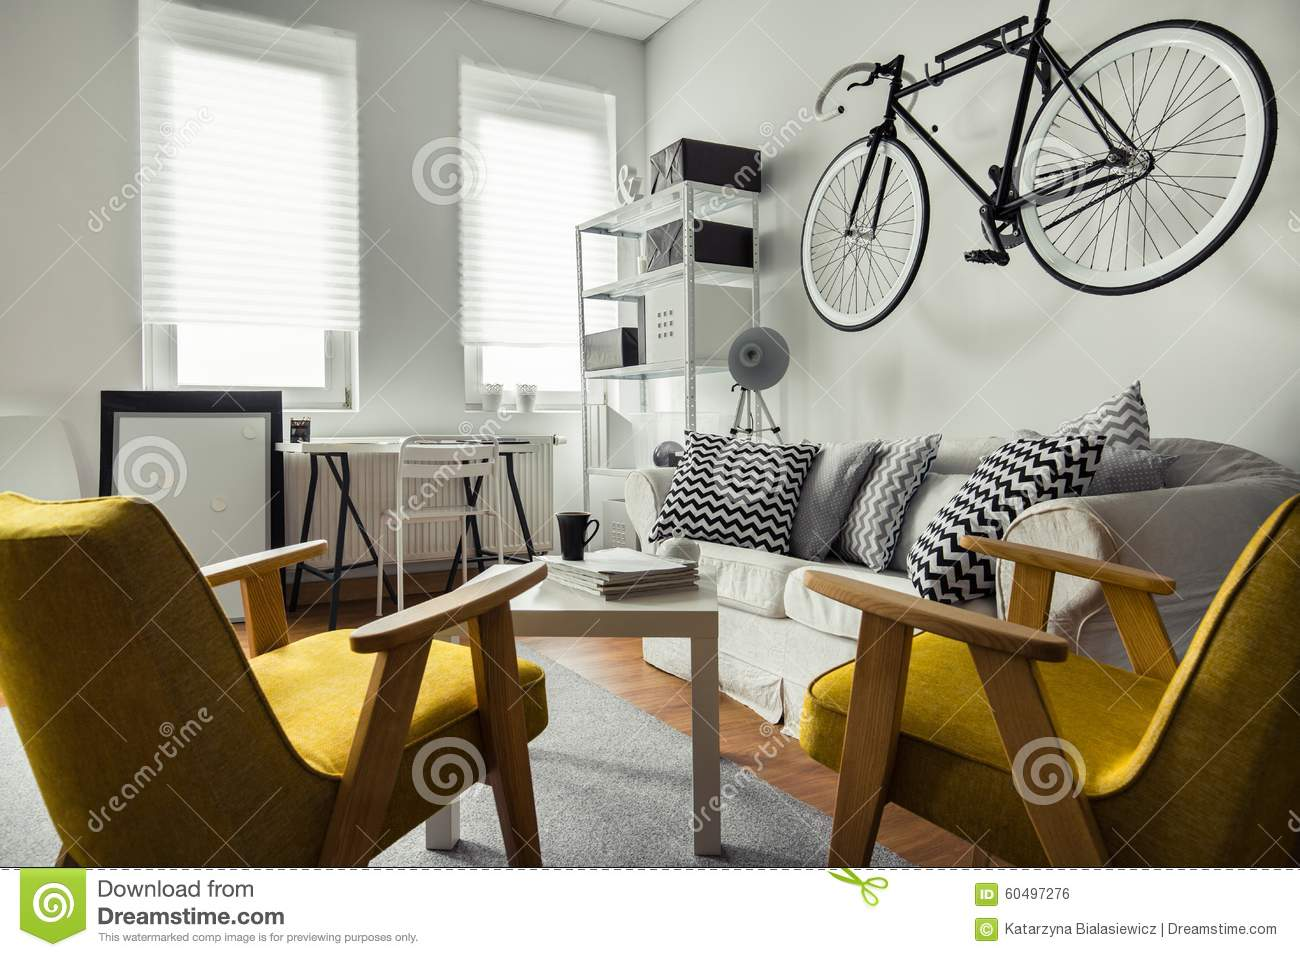 Bicycle hanging on the wall stock photo image 60497276 Where to hang pictures in living room